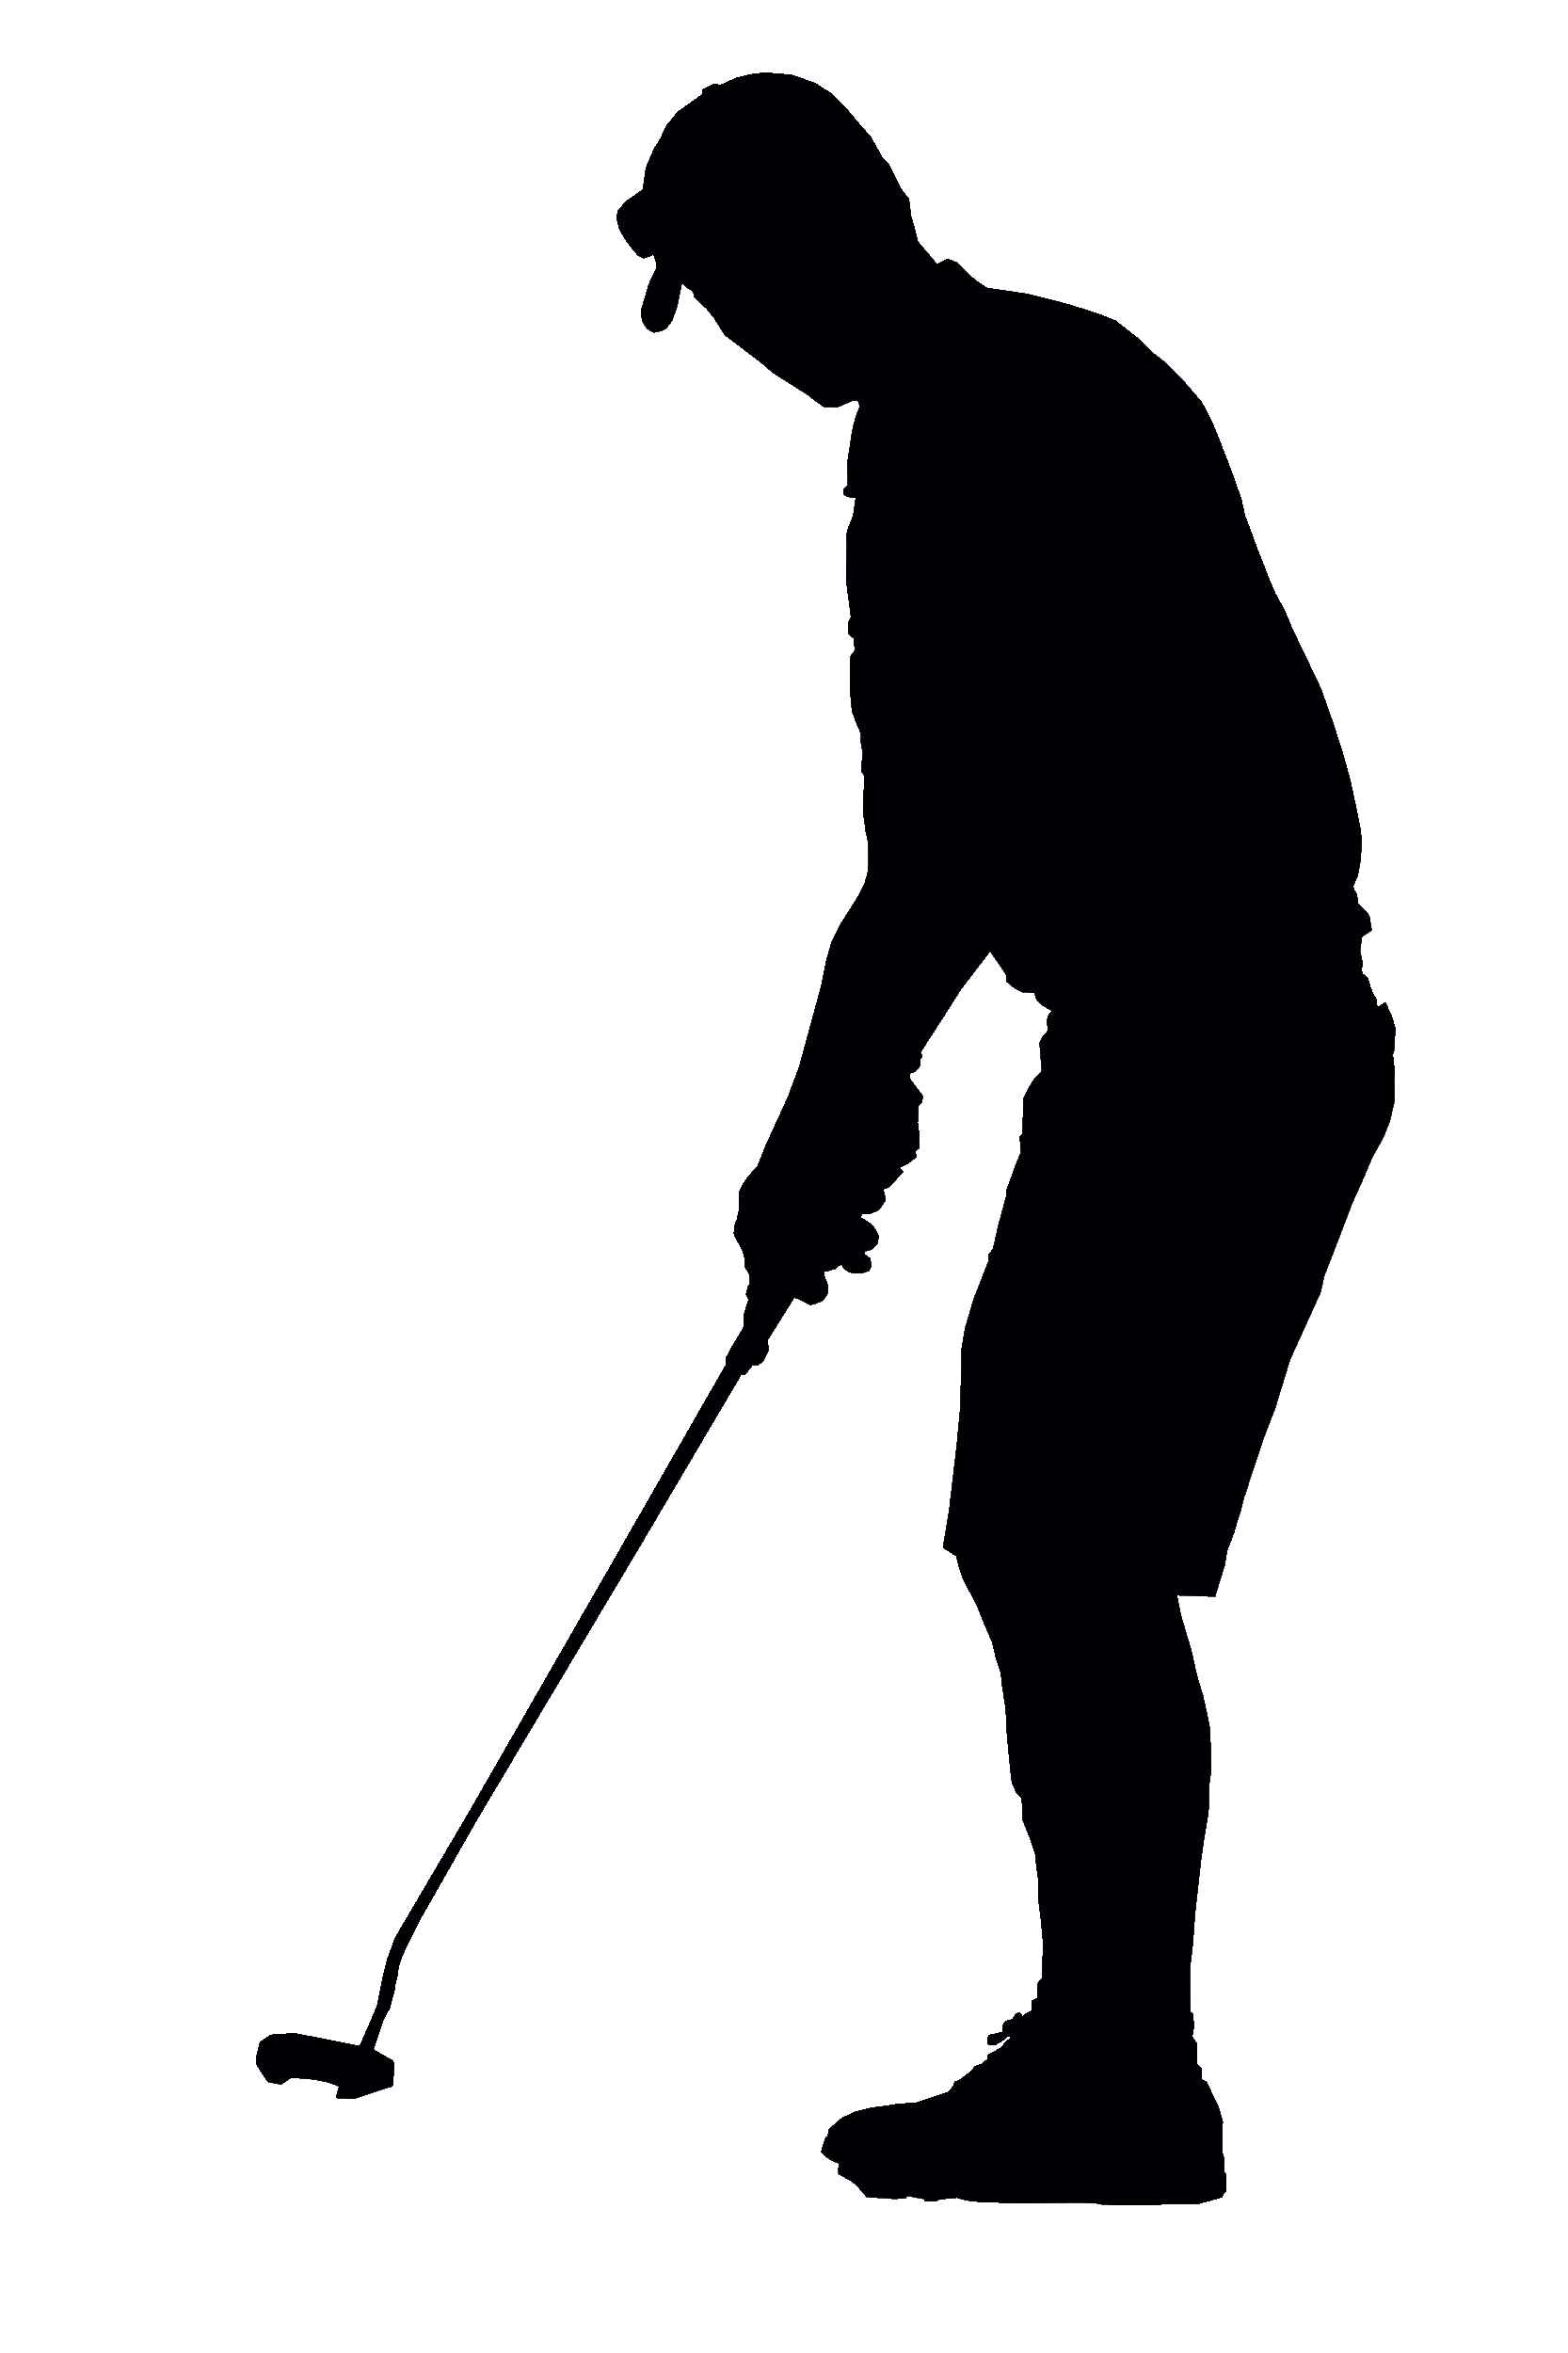 Golf Player Silhouette transparent PNG.